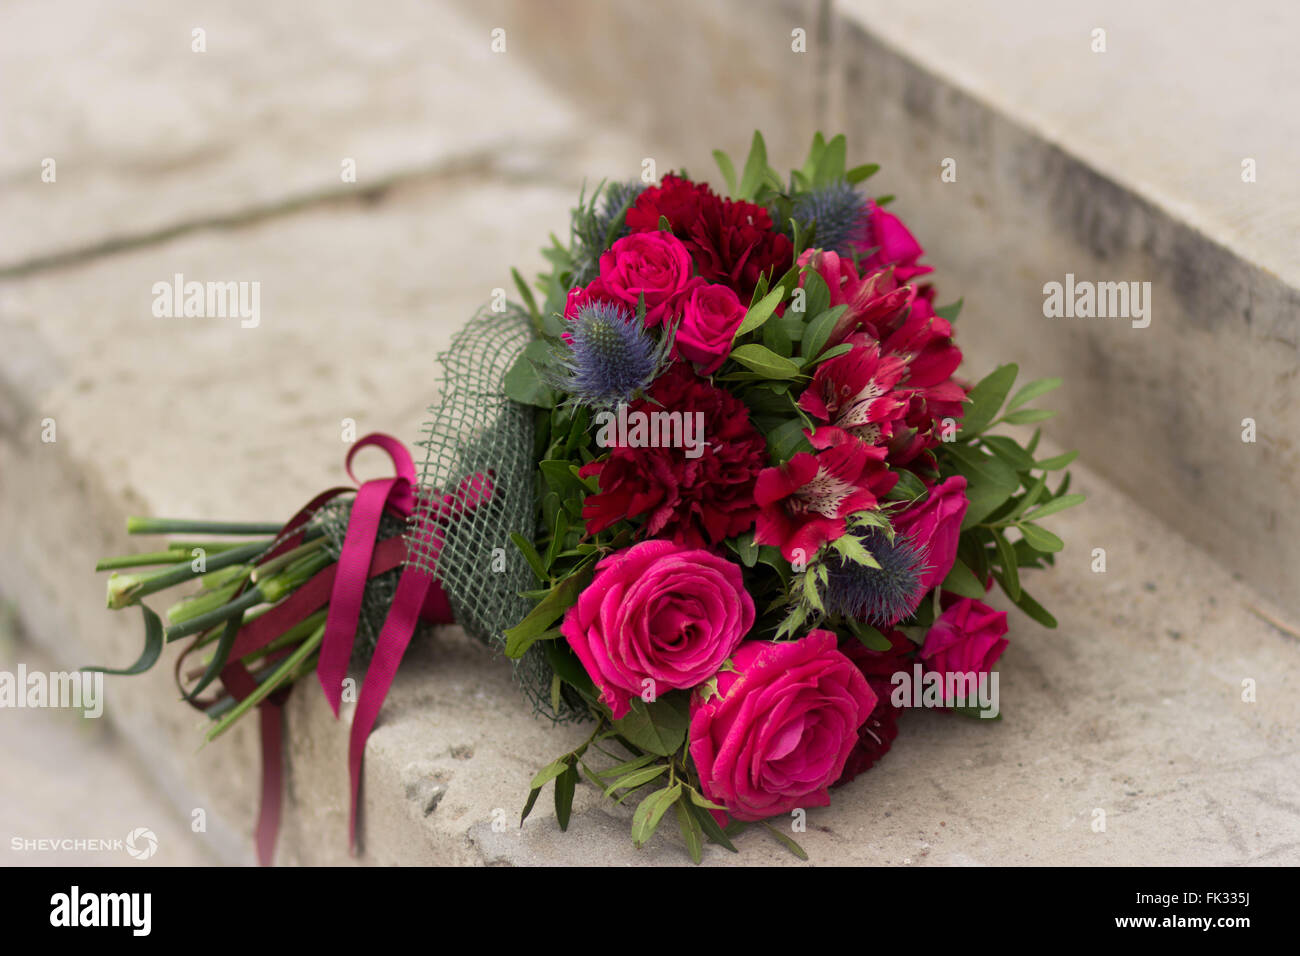 Pale dusty pink flowers stock photos pale dusty pink flowers stock bouquet of pink flowers on stone stairs stock image mightylinksfo